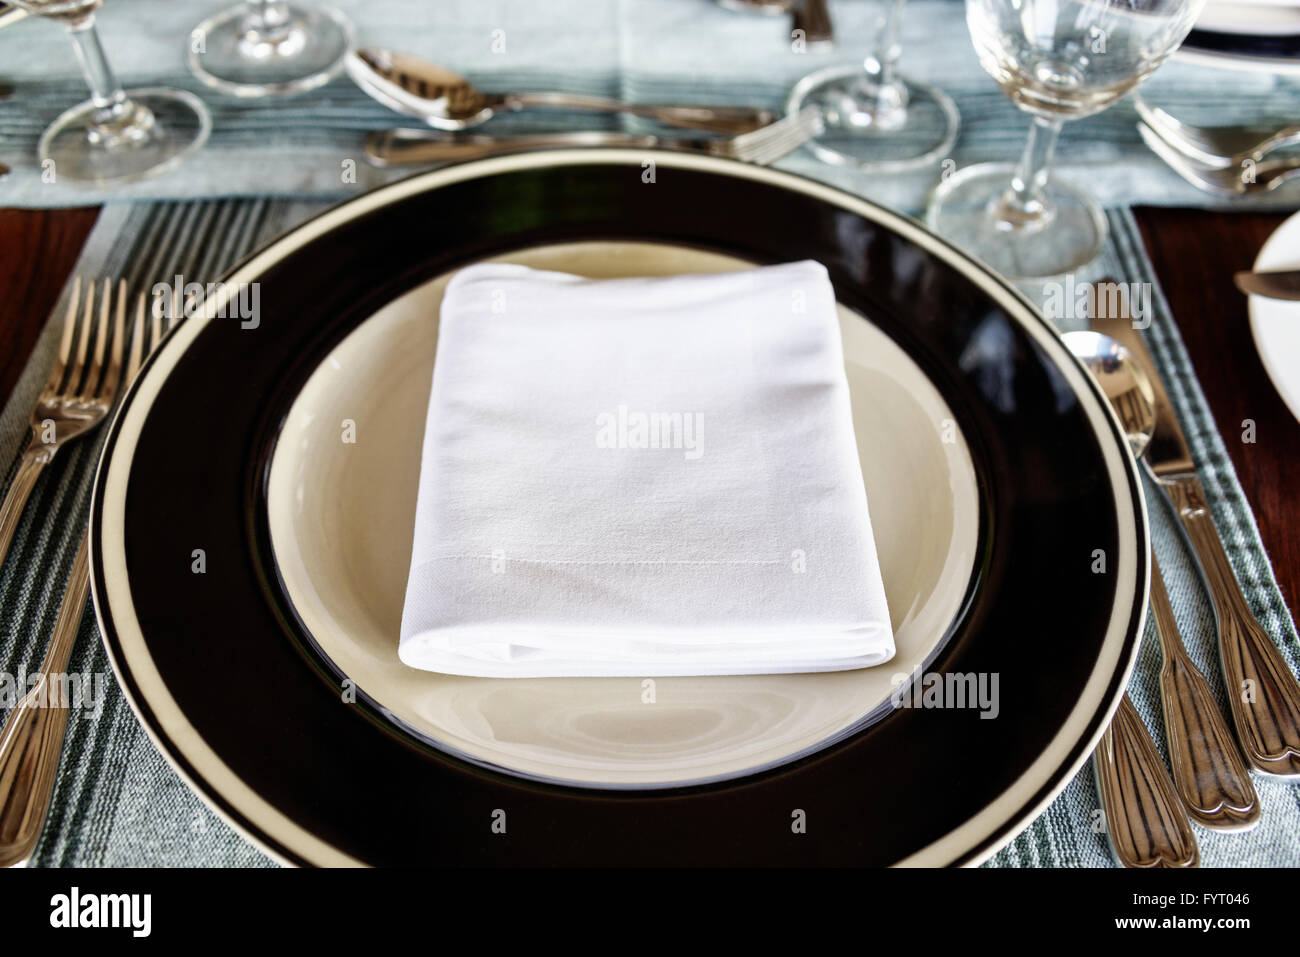 First person perspective view on neatly arranged dining table setting with folded napkin in middle of plate with utensils & First person perspective view on neatly arranged dining table ...